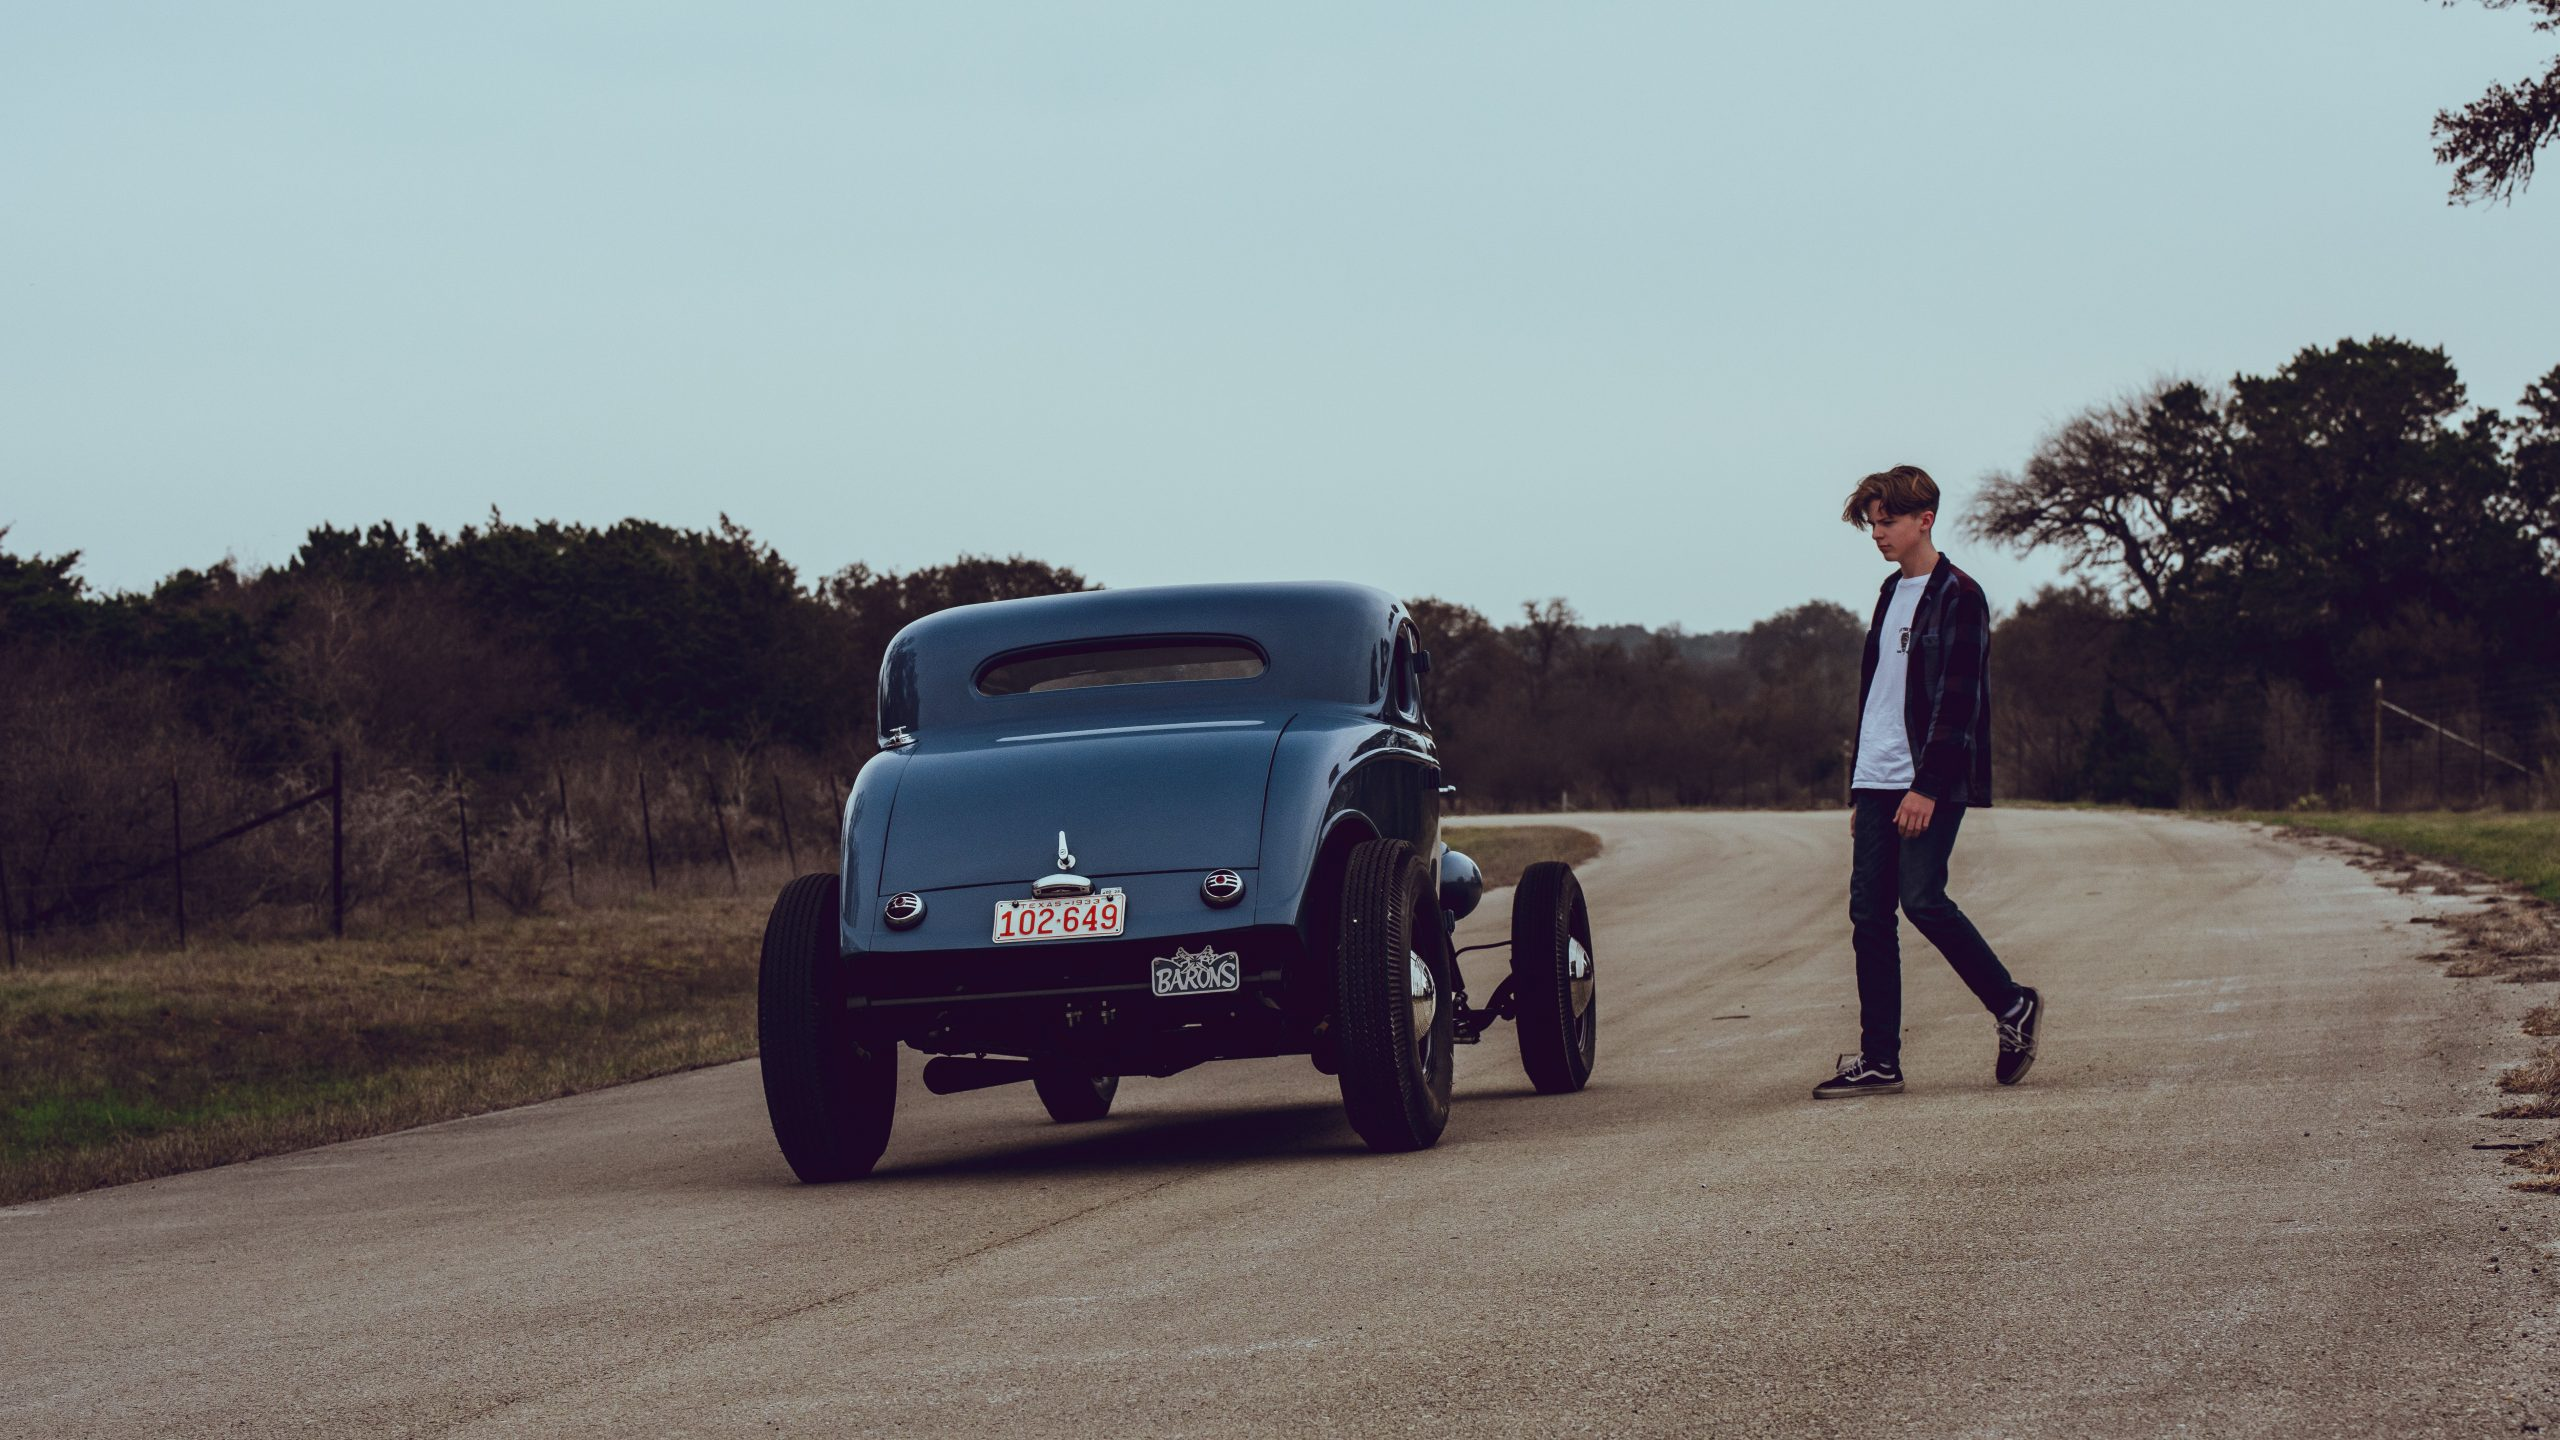 Chris and Dean Niederkrom's 1933 Ford Coupe